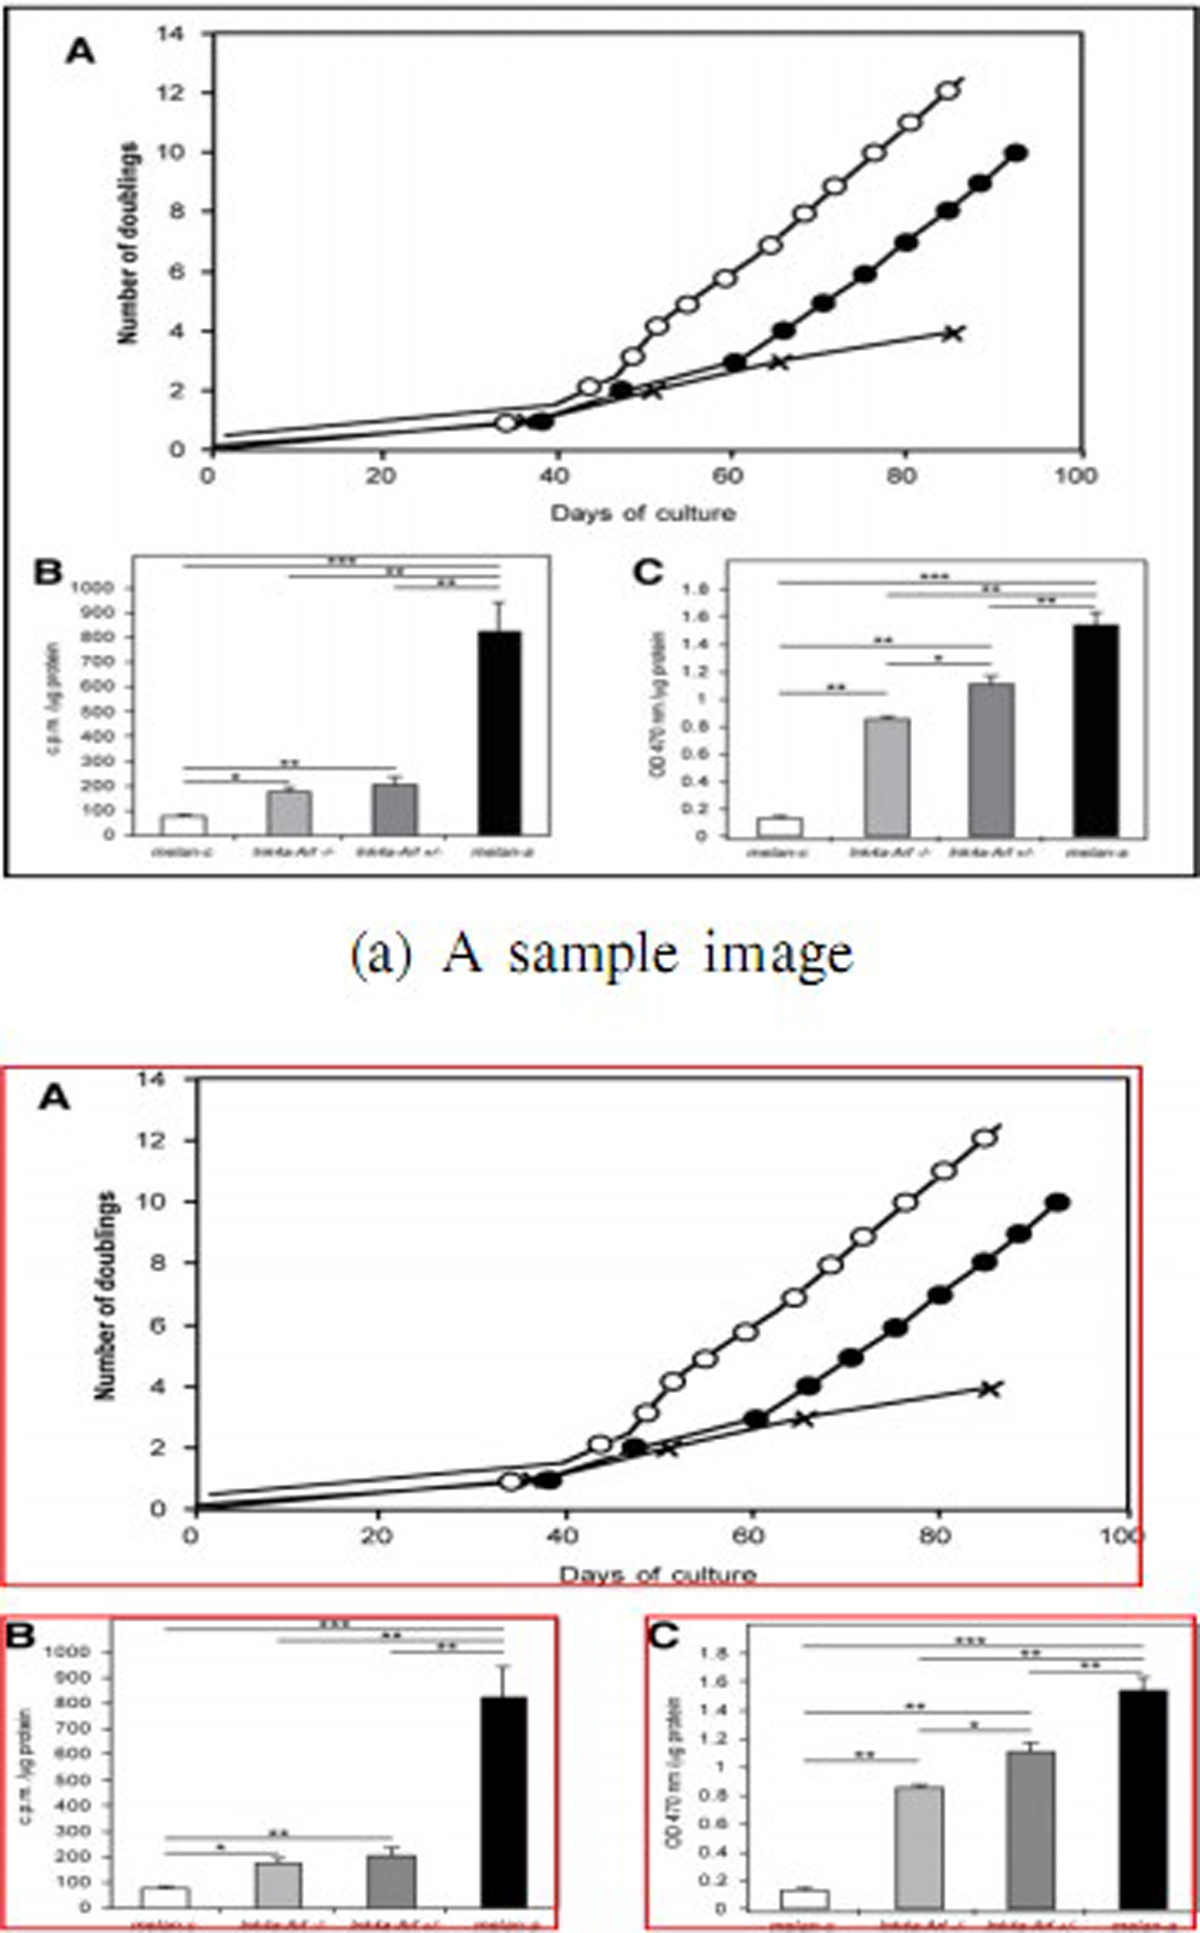 https://static-content.springer.com/image/art%3A10.1186%2F1755-8794-6-S3-S8/MediaObjects/12920_2013_Article_429_Fig2_HTML.jpg